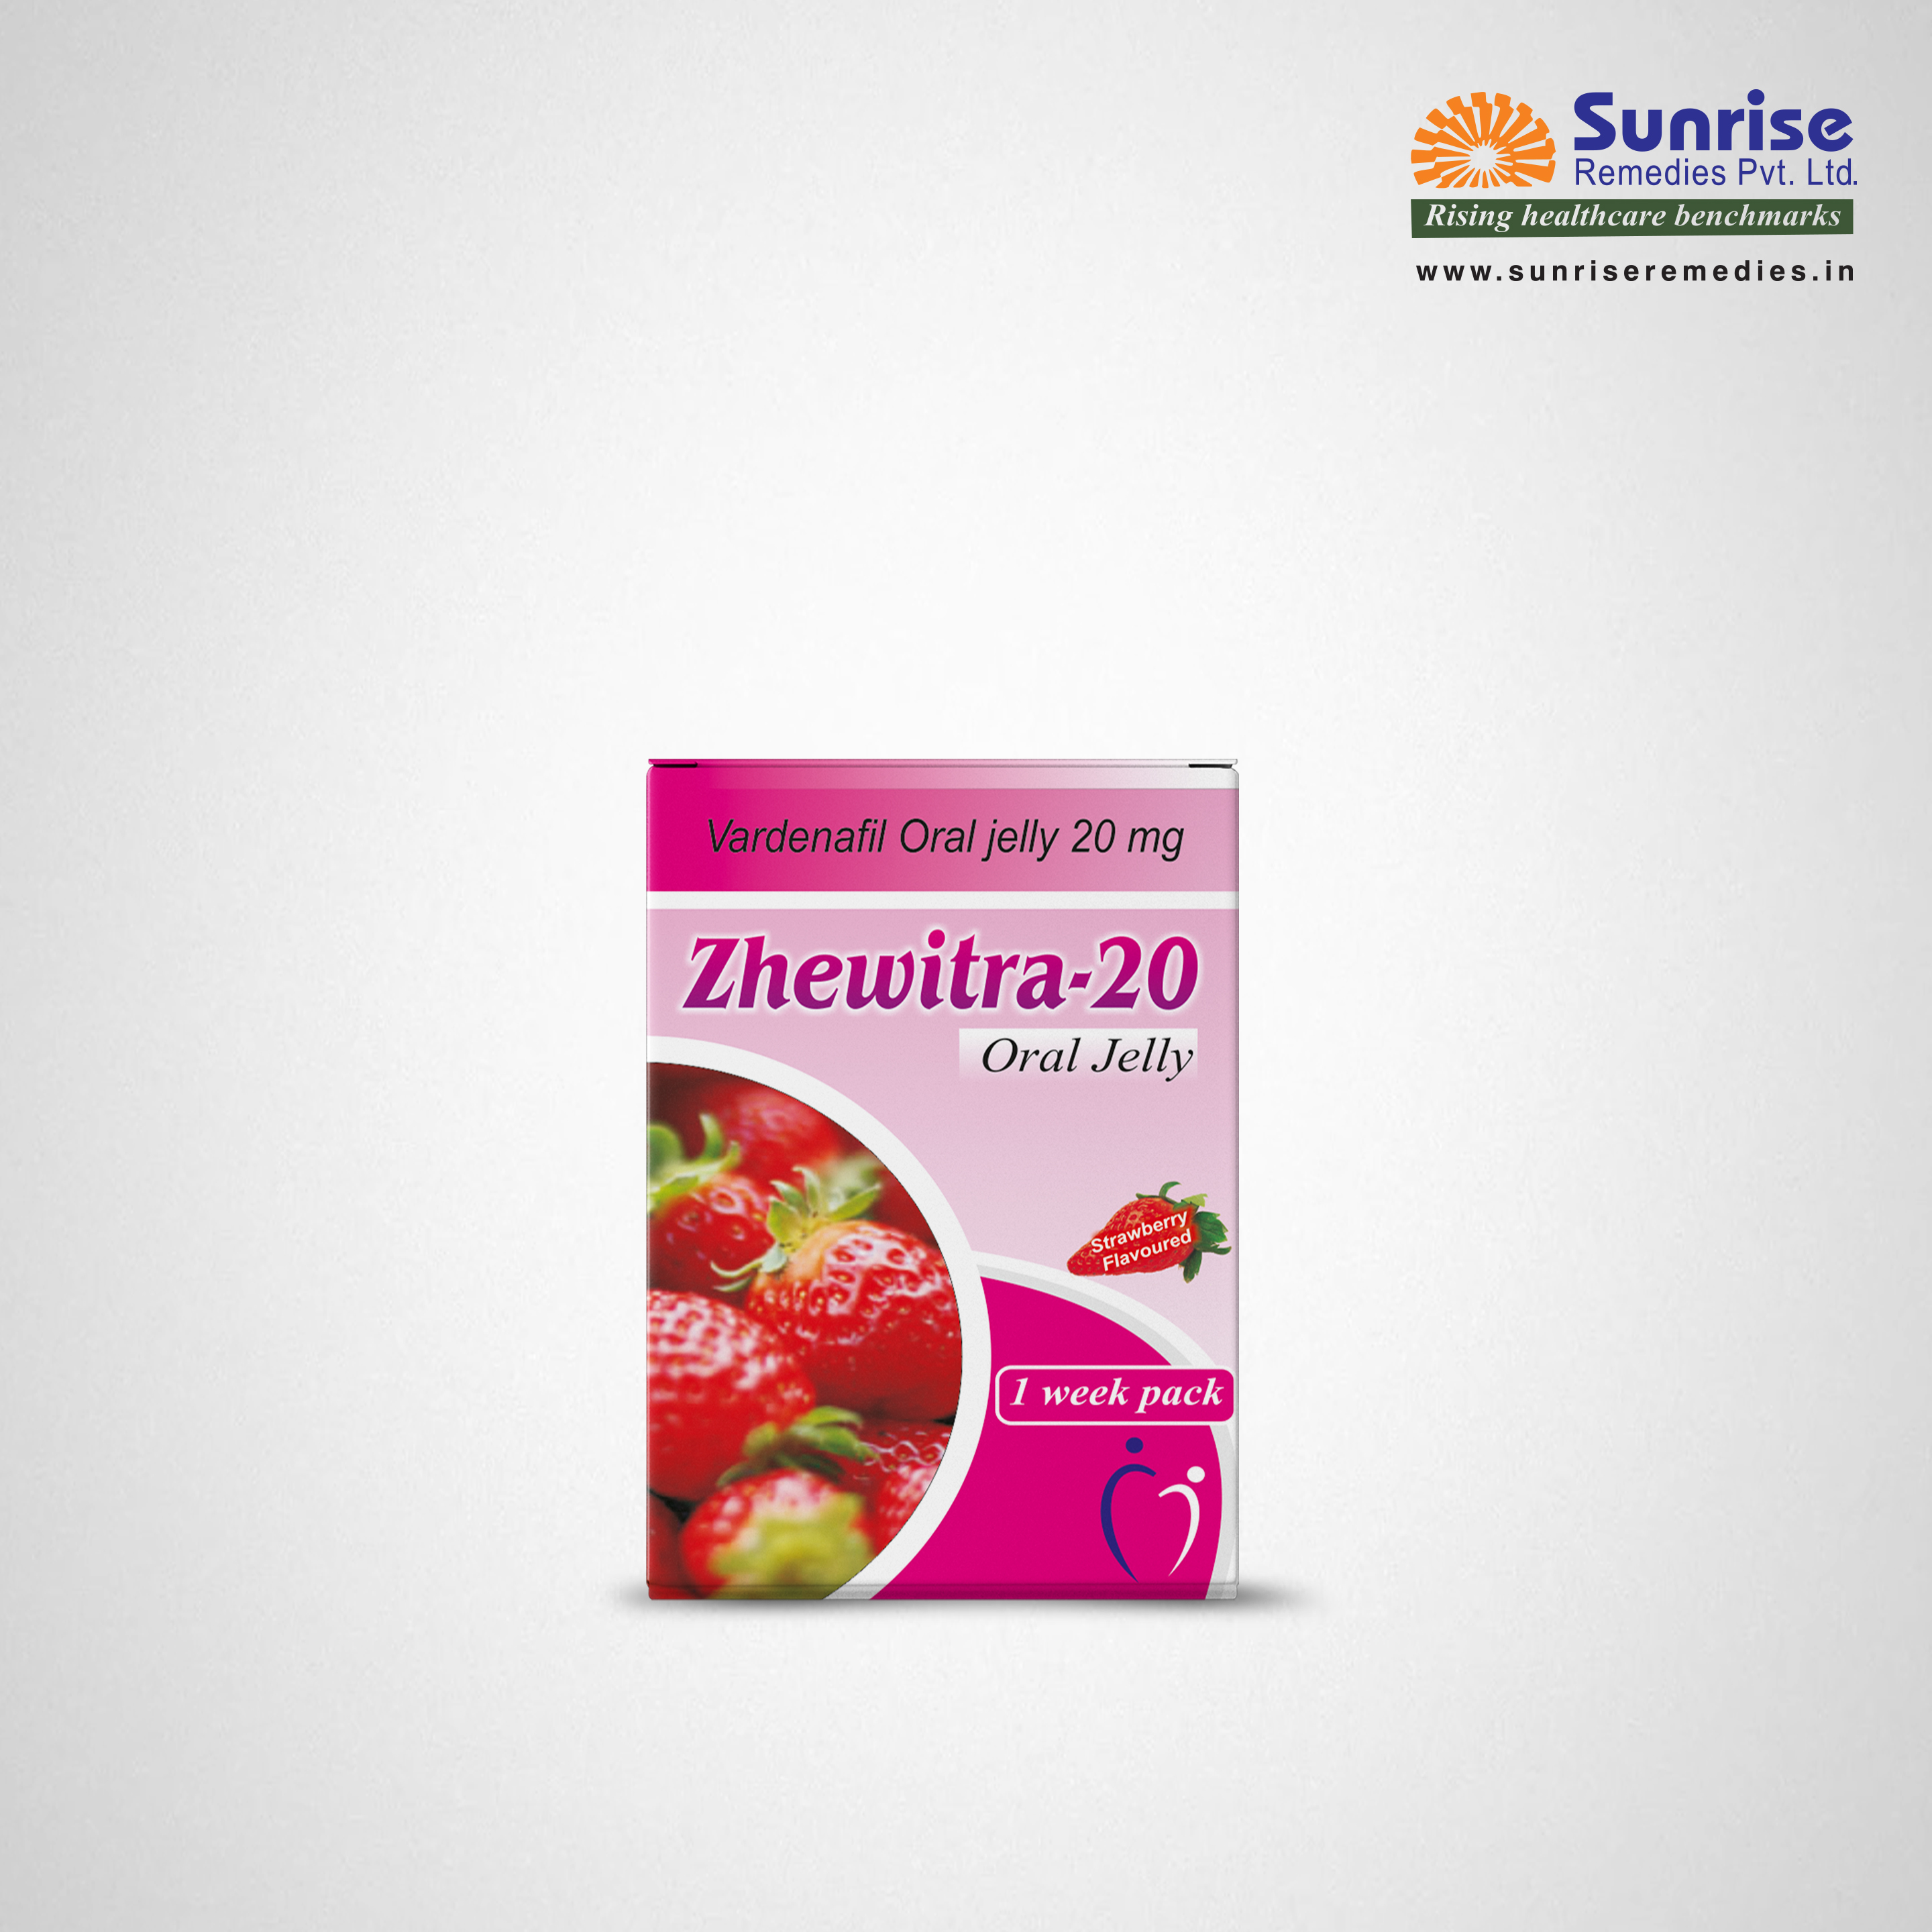 Zhewitra oral jelly | Vardenafil | Sunrise Remedies